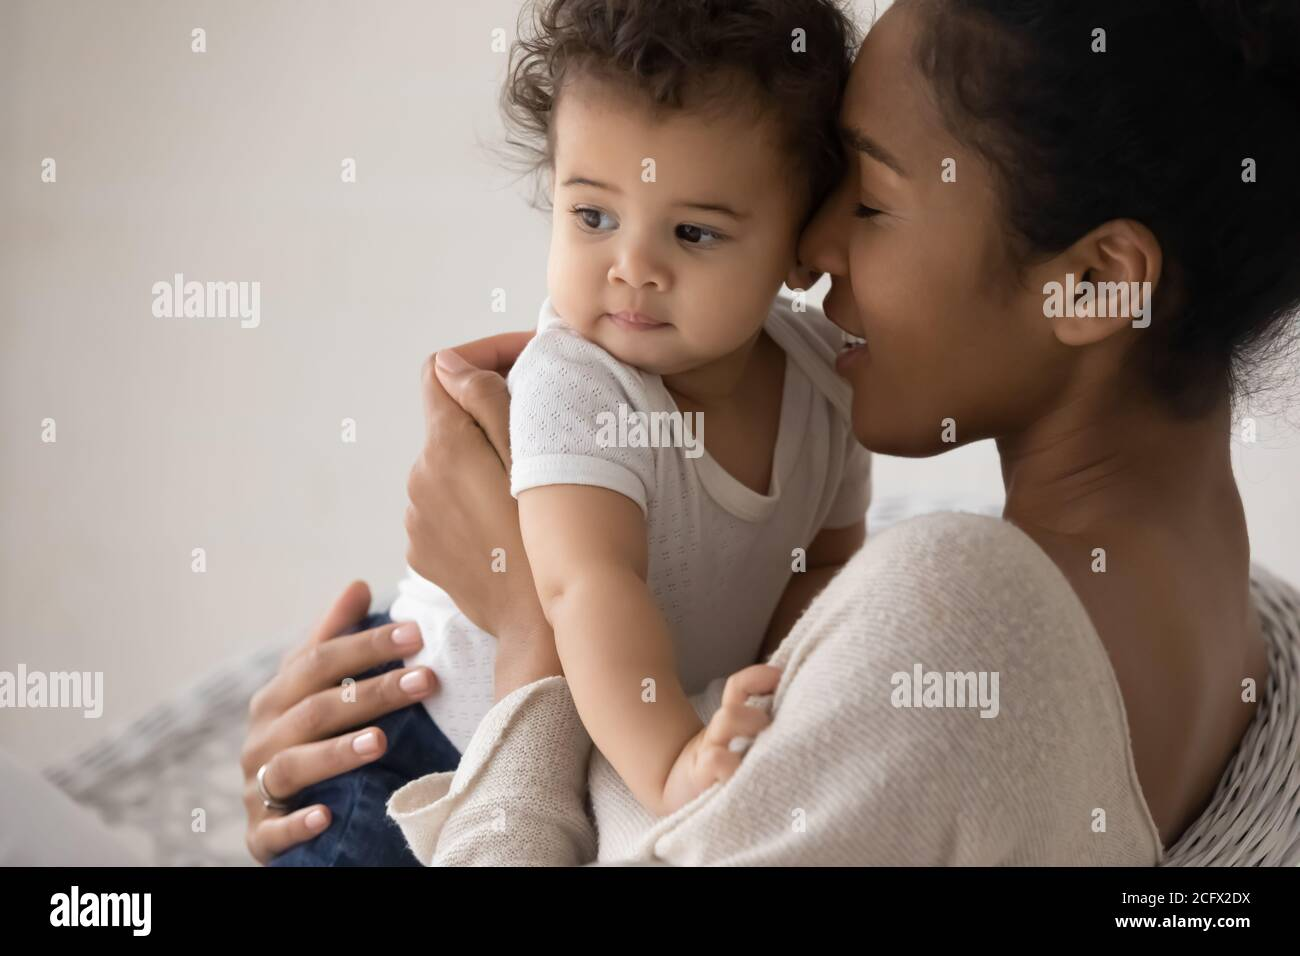 Caring young mixed race mother cuddling little biracial baby. Stock Photo